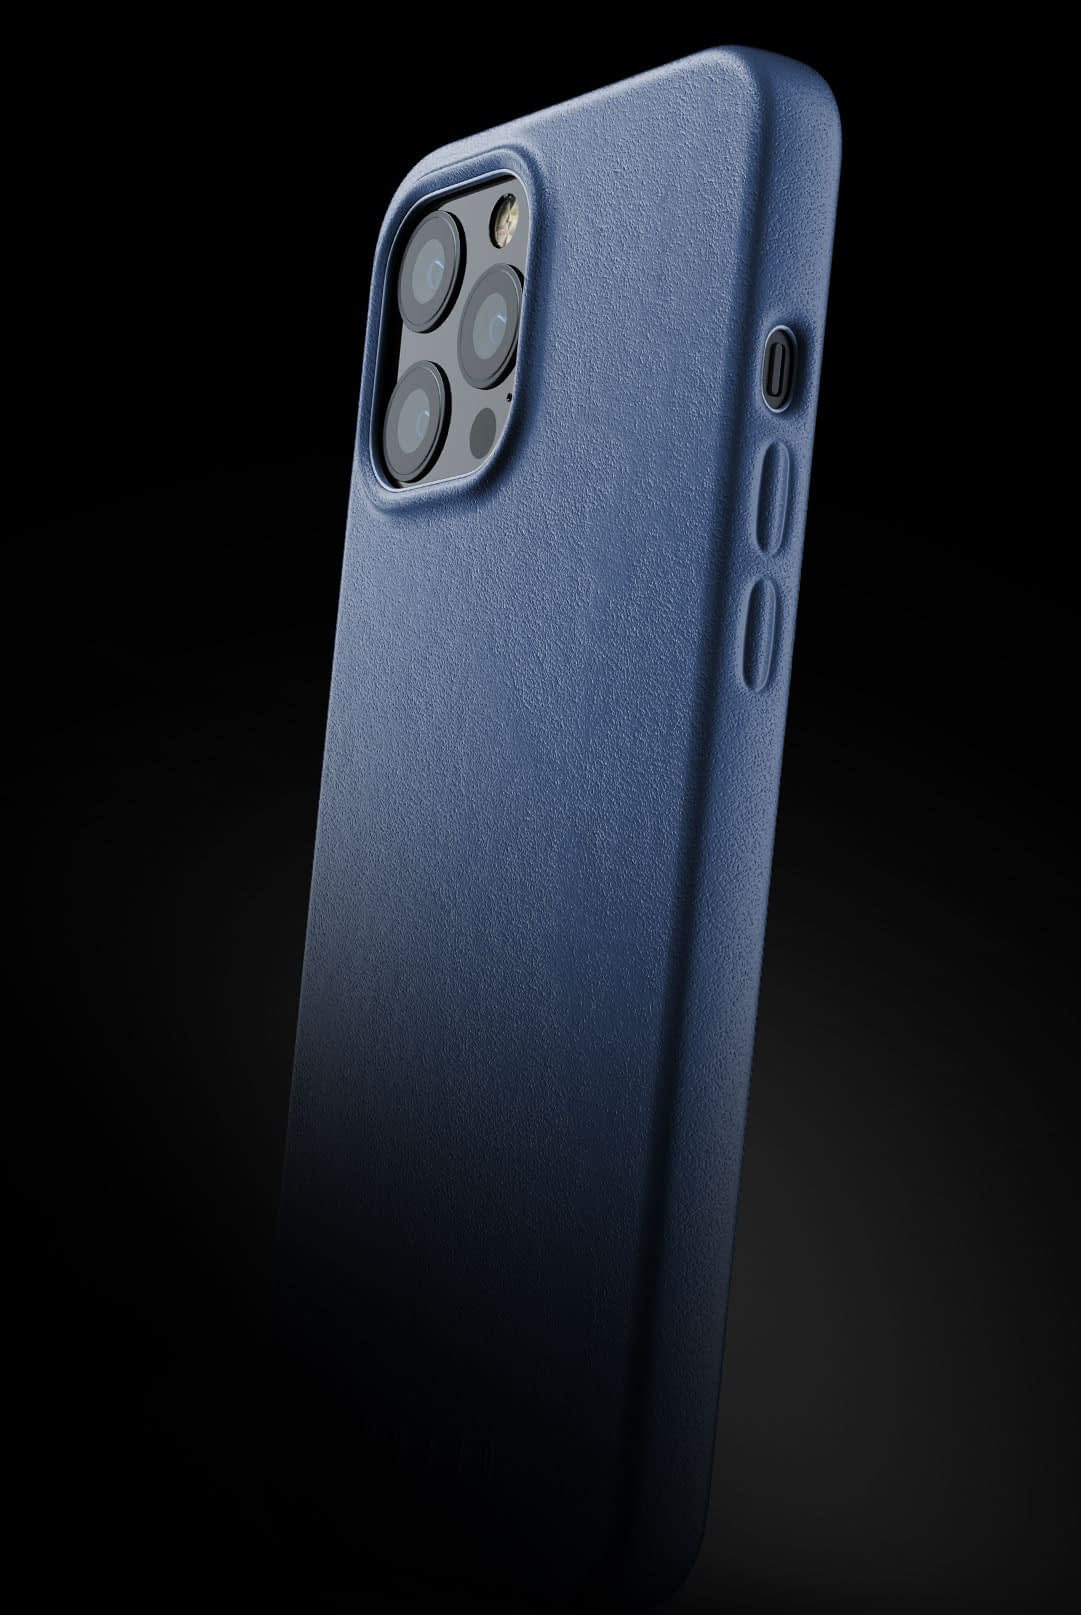 full leather case for iphone 12 pro max monaco blue 002